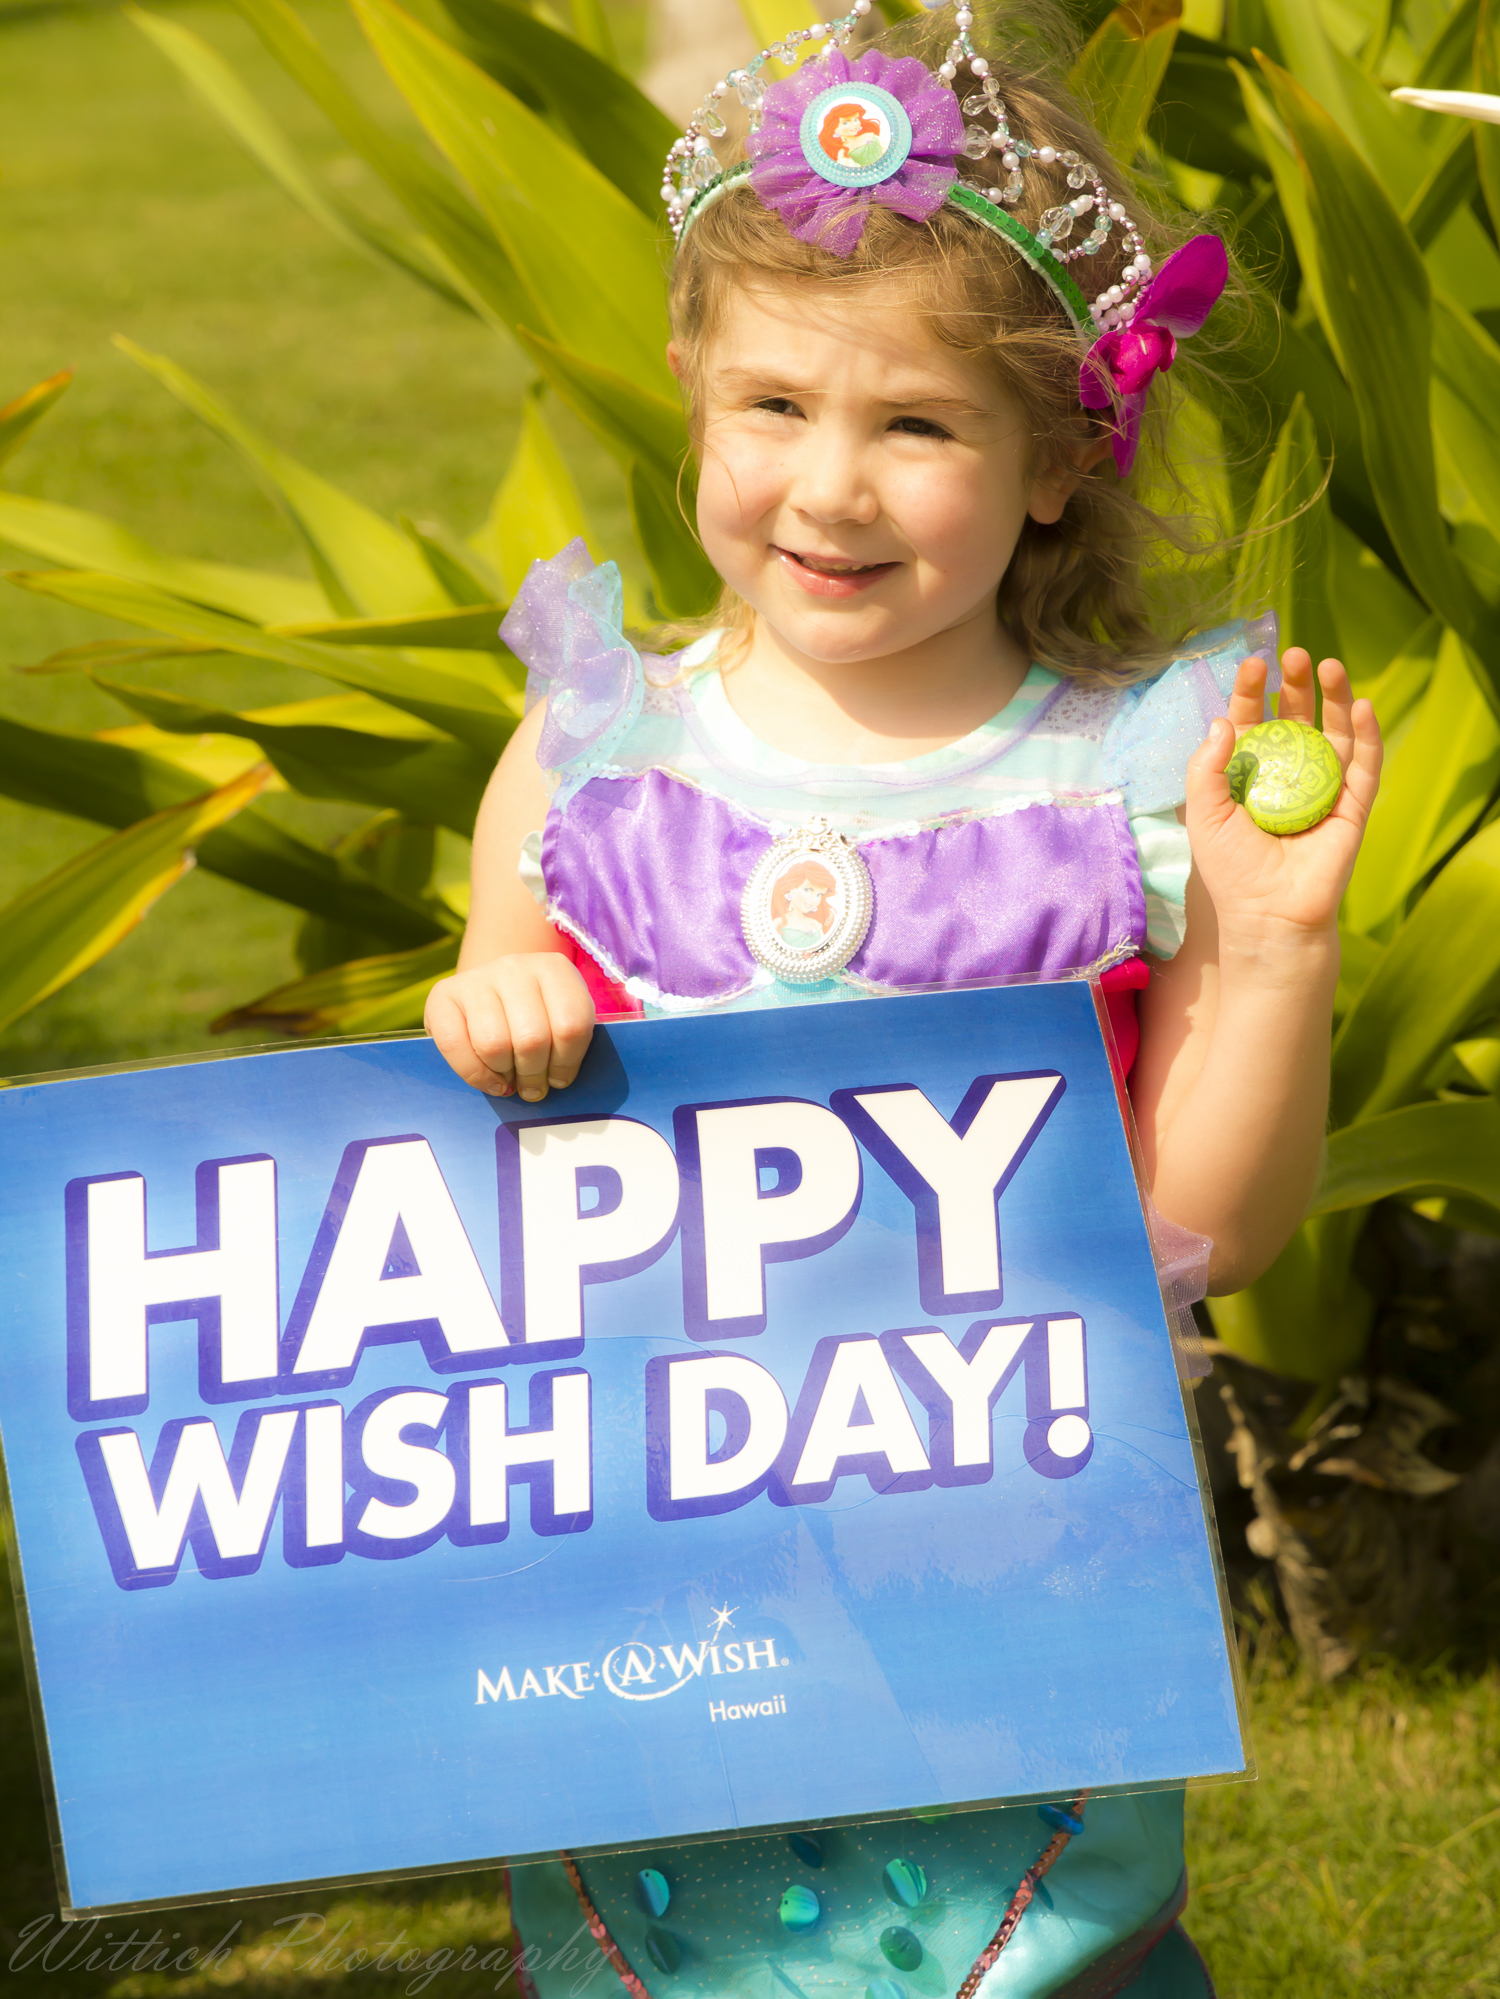 """- When given a chance to have her one true wish, this little one wished to be Ariel and go to Hawaii and meet Moana, to help Moana restore the Heart of Te Fiti! She talked about exploring the island by land, sea and air in search for the Heart. Through an incredible partnership, Make-A-Wish Illinois and Make-A-Wish Hawaii made the magic happen! From the highest level of attention and service every place we went, to a fun scavenger hunt of """"clues"""" leading our wisher to Moana and the Heart of Te Fiti, every detail was considered. On """"wish day""""—Allison and her little brother sailed across """"the sea"""" with Moana and a kind captain, and then finished their adventure by playing hide and seek with the Heart of Te Fiti. The utter joy in their hearts was apparent and is hopefully something you can even a glimmer of through these photos. Click the links at the top of this page to donate to Make-A-Wish Foundation and help make another child's one true wish come true!"""